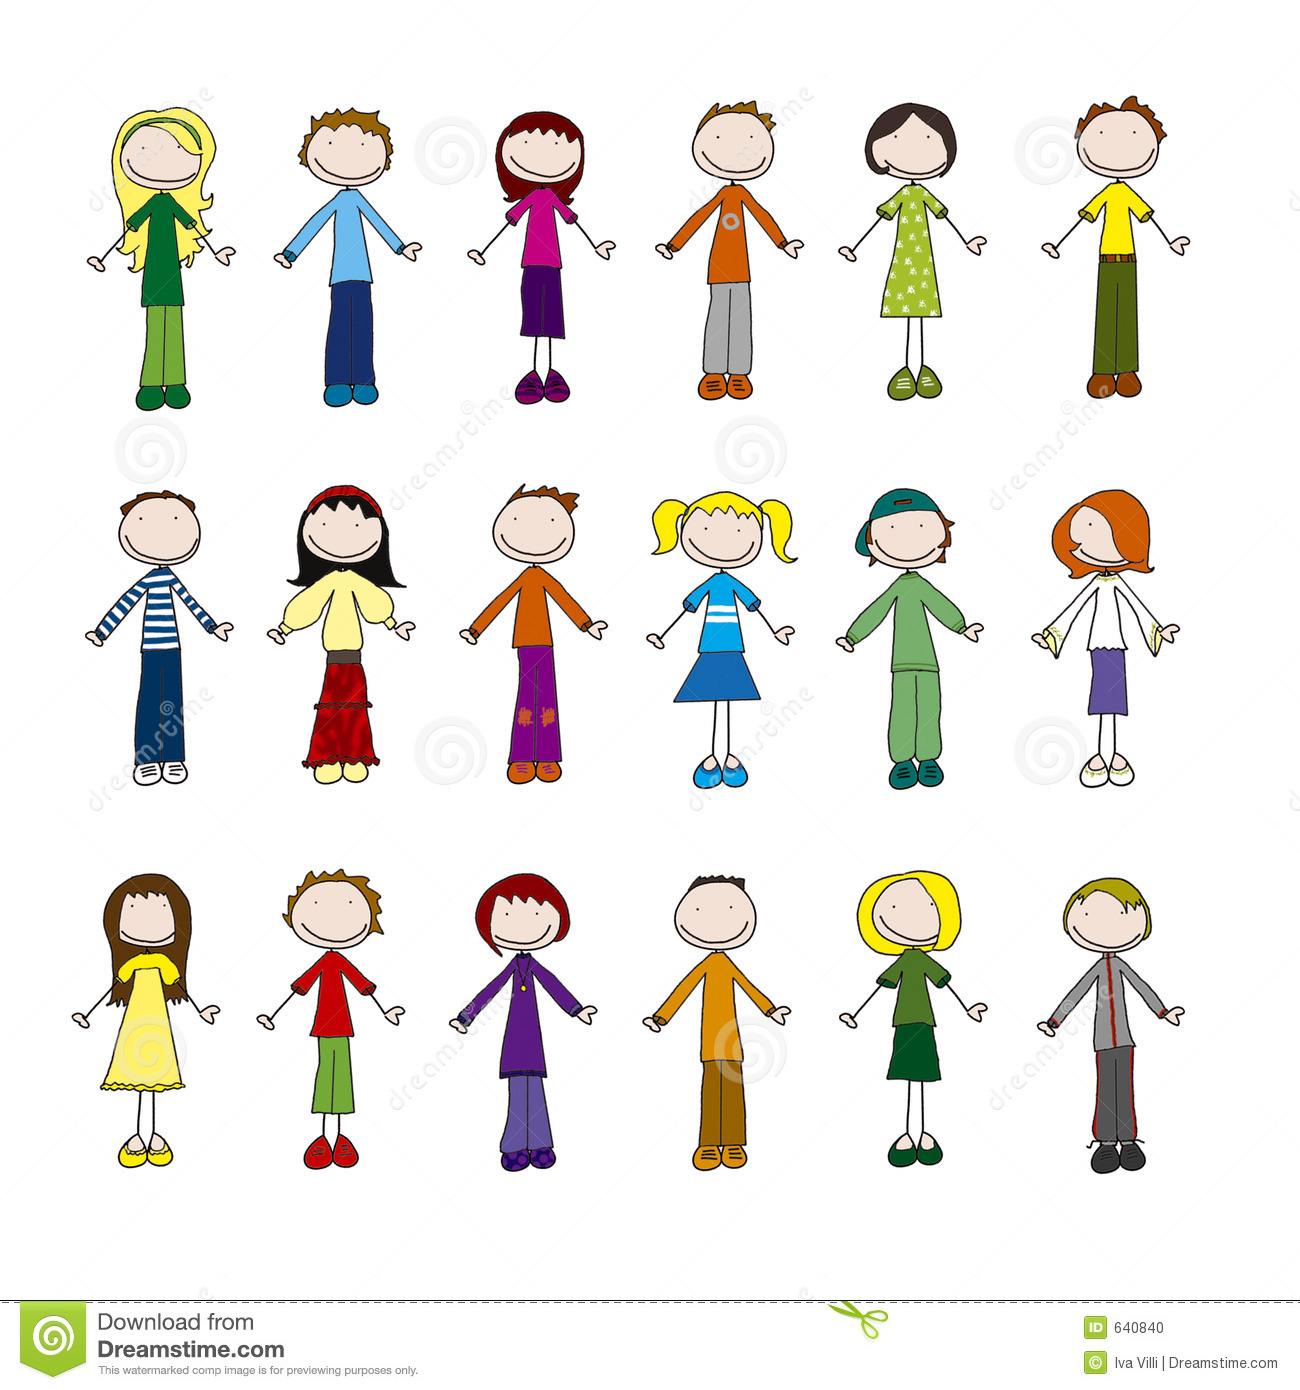 Clipart little people picture freeuse download Little people | Clipart Panda - Free Clipart Images picture freeuse download